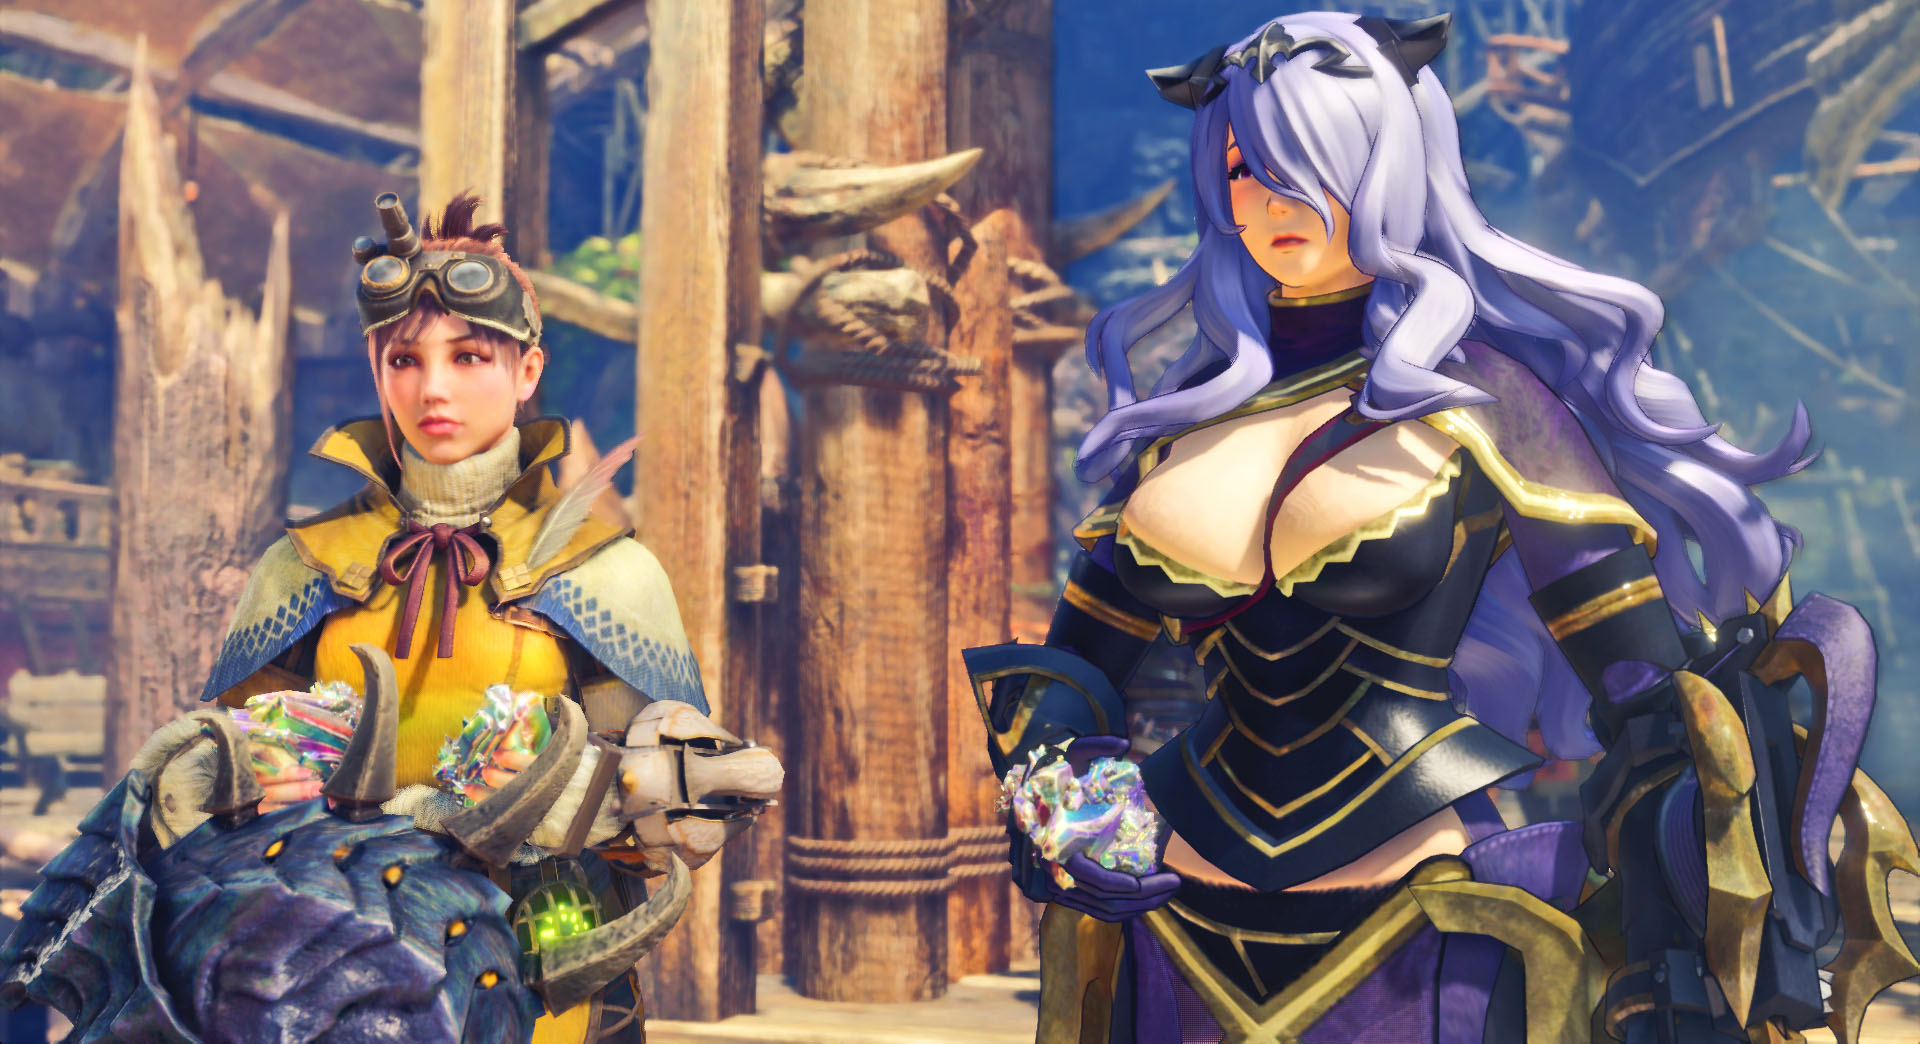 Monster Hunter World Fire Emblem Mod Allows Players To Play As